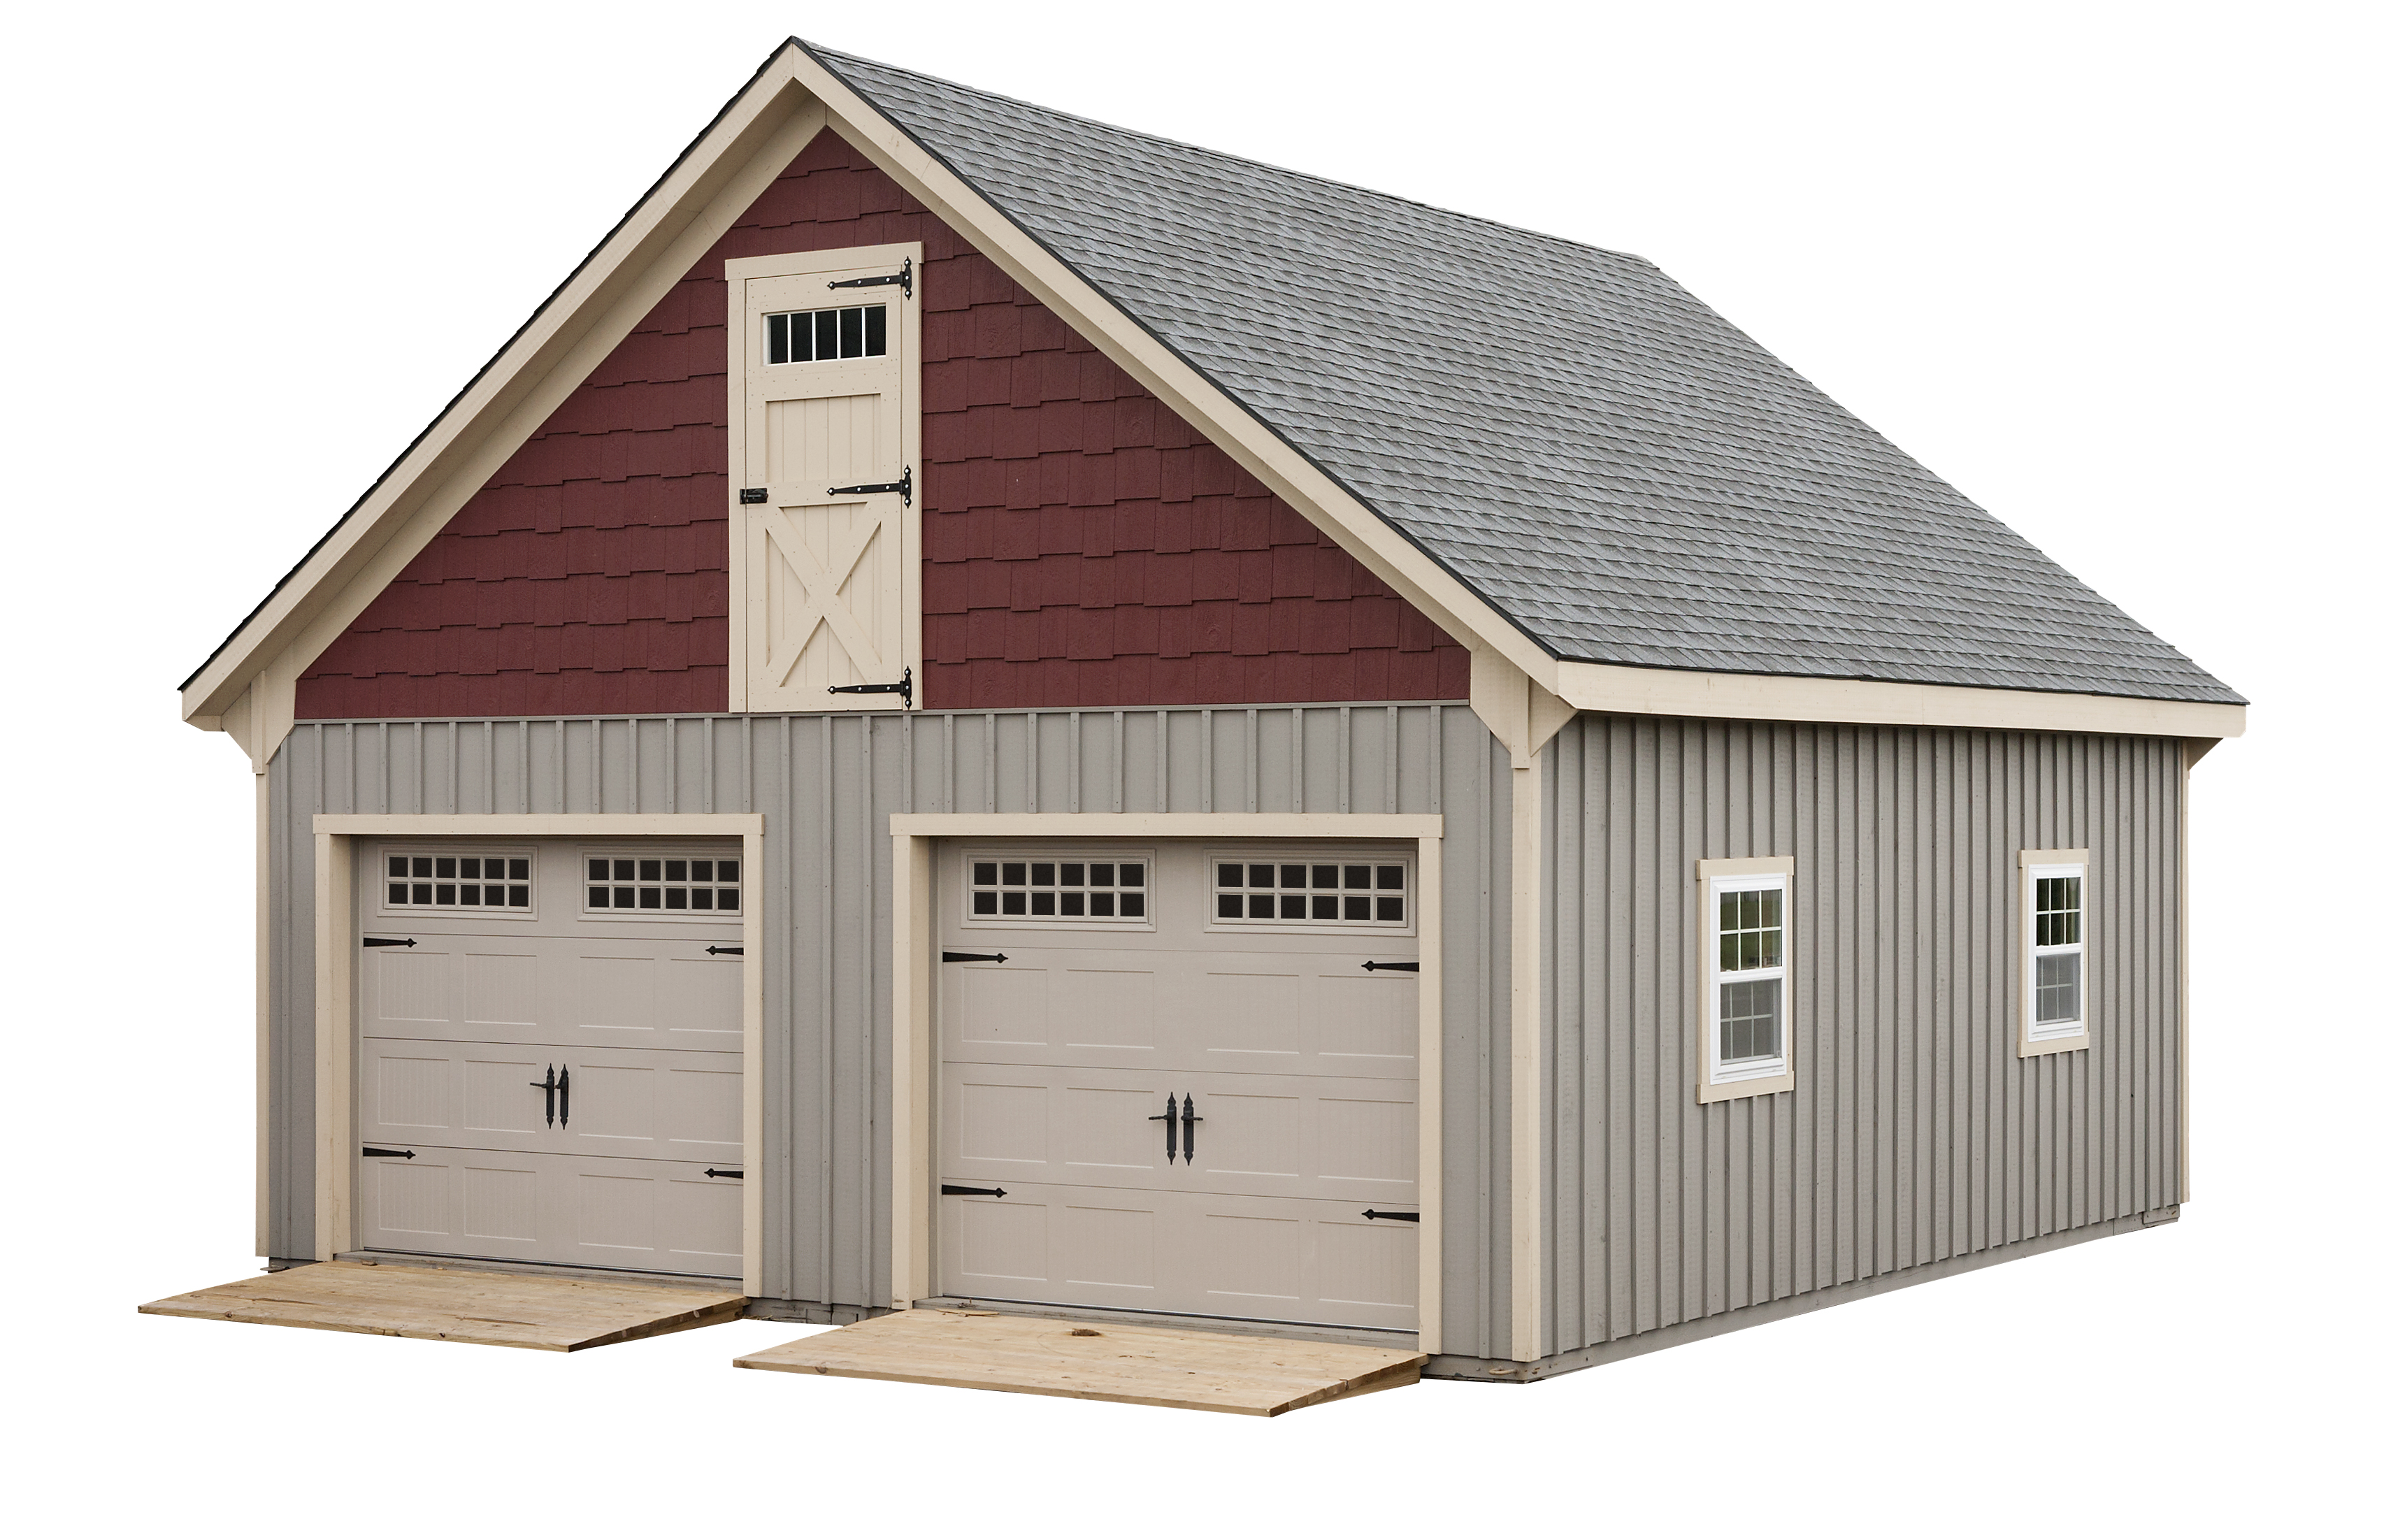 20 x 24 two story double wide garage amish sheds from for Double story garage